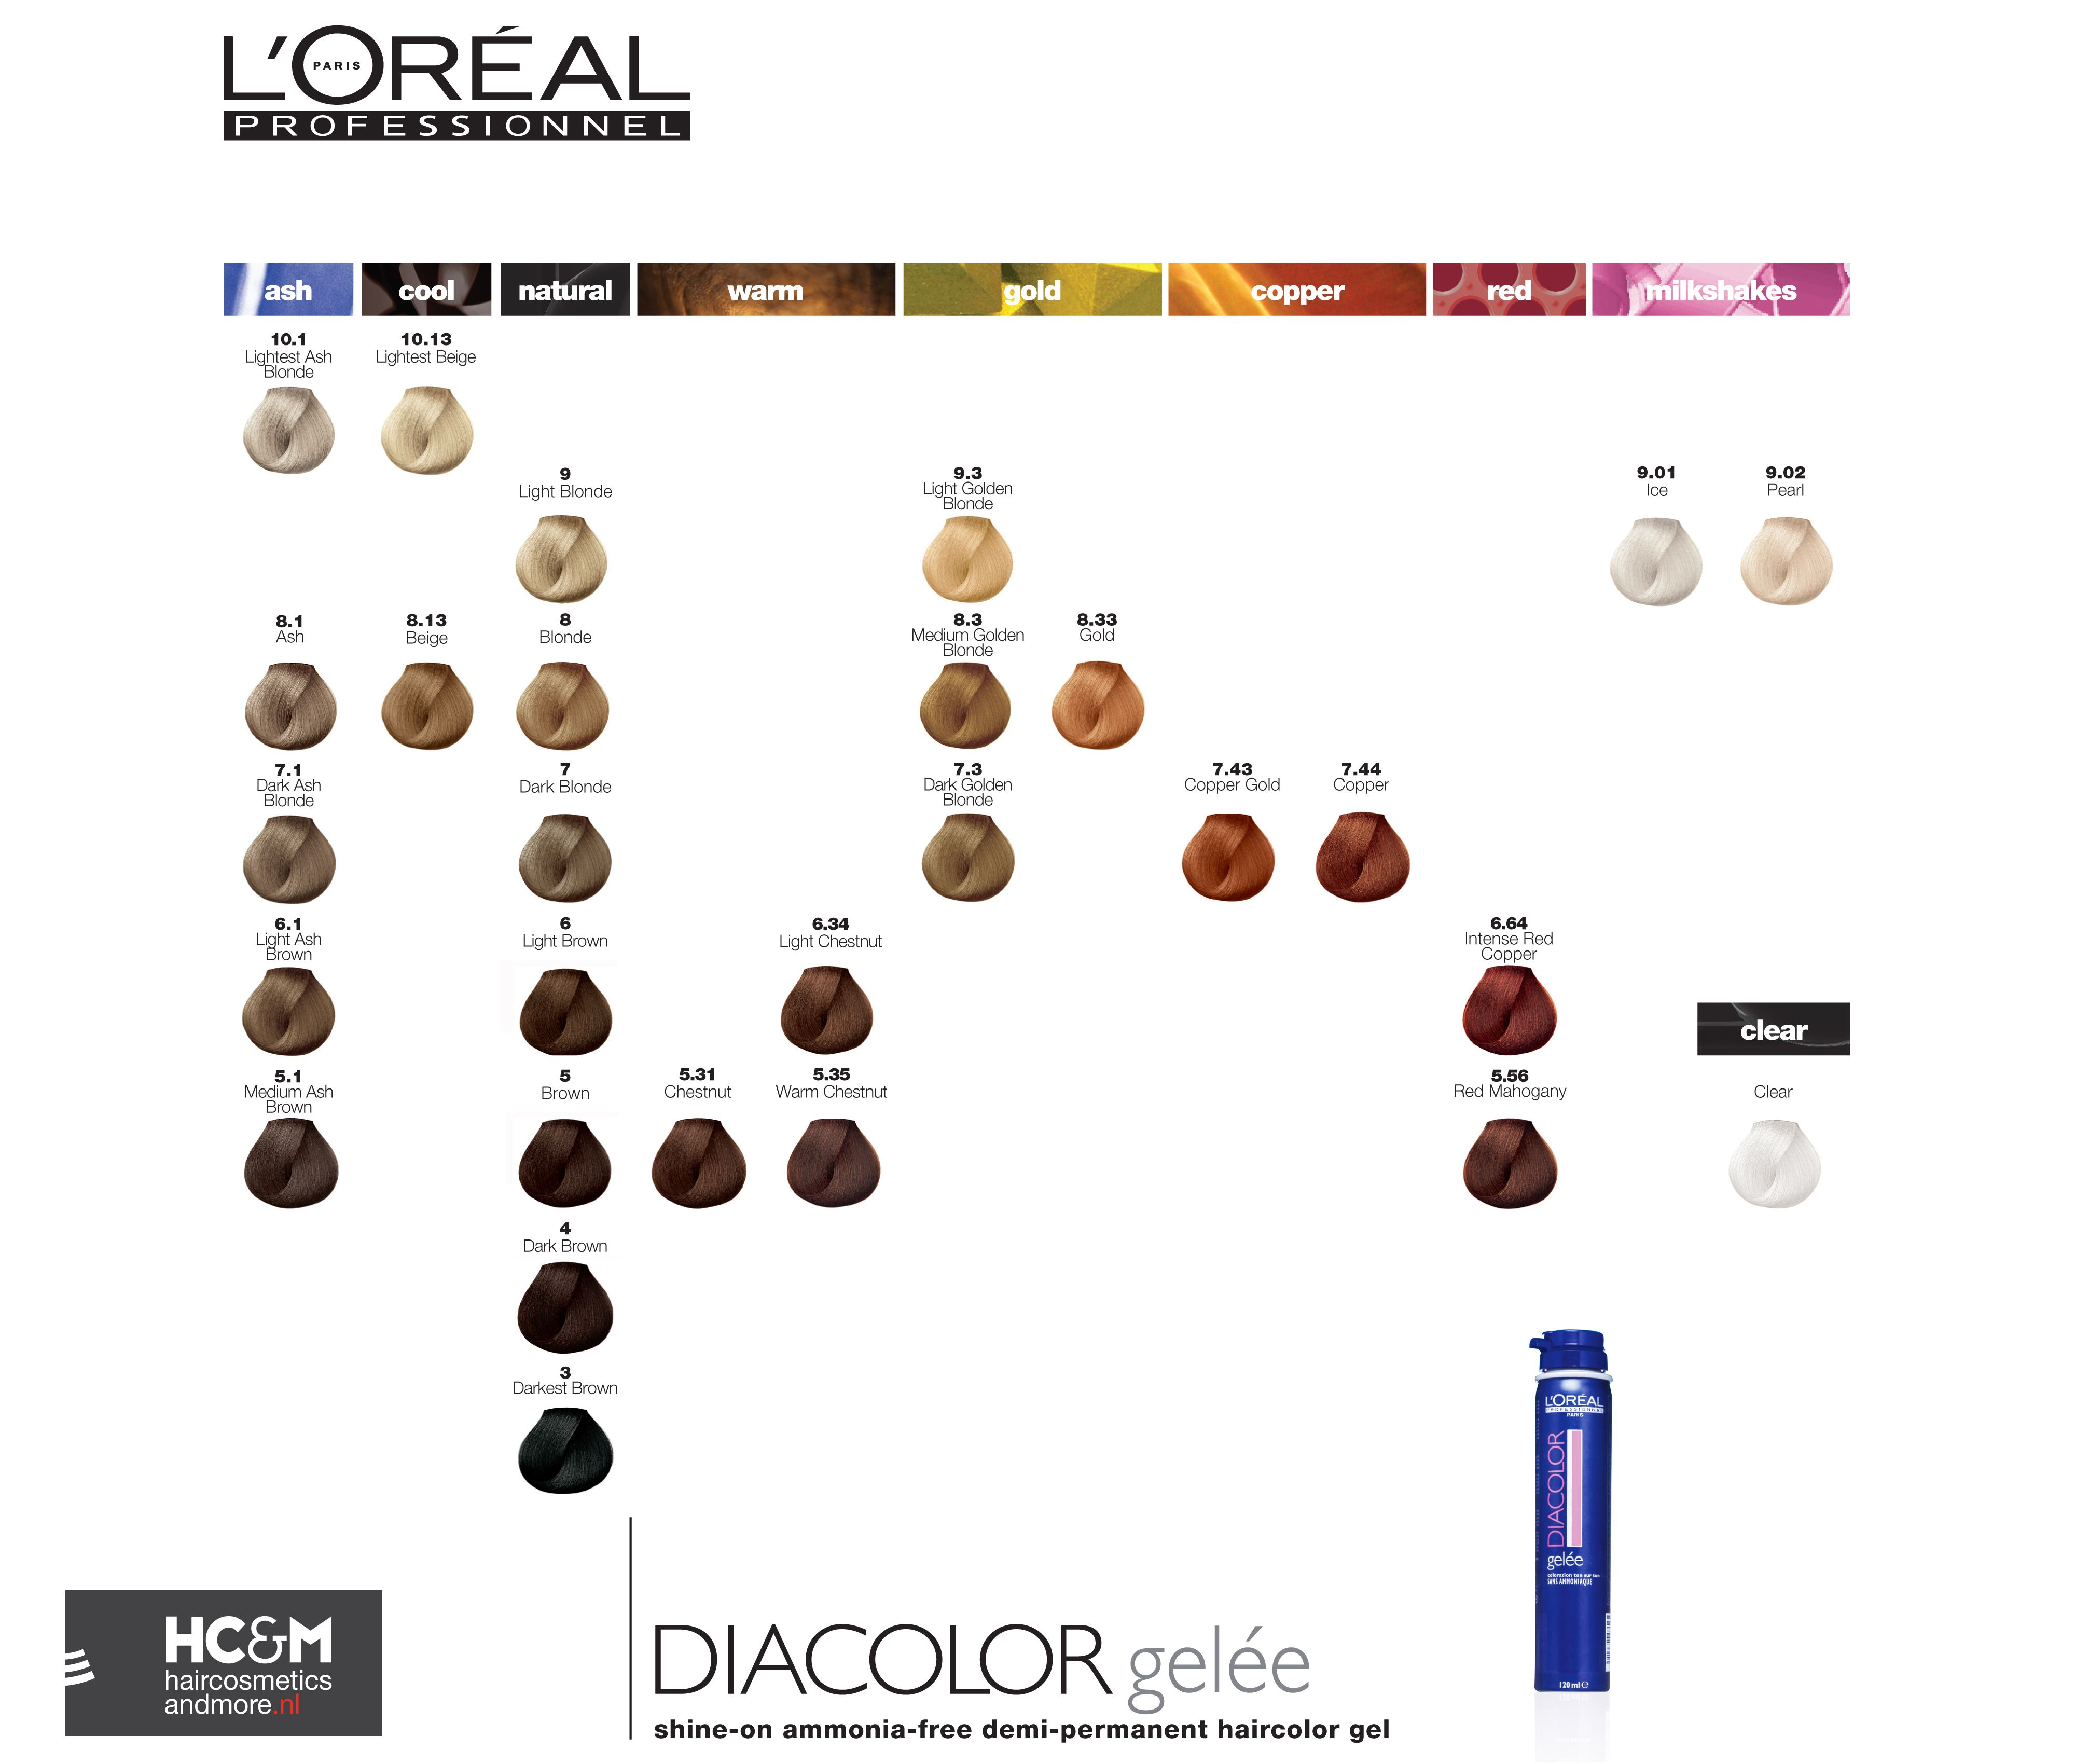 Loral professionnel diacolor gele shine on ammonia free demi colour chart loral professionnel diacolor gele shine on ammonia free demi permanent haircolor nvjuhfo Images